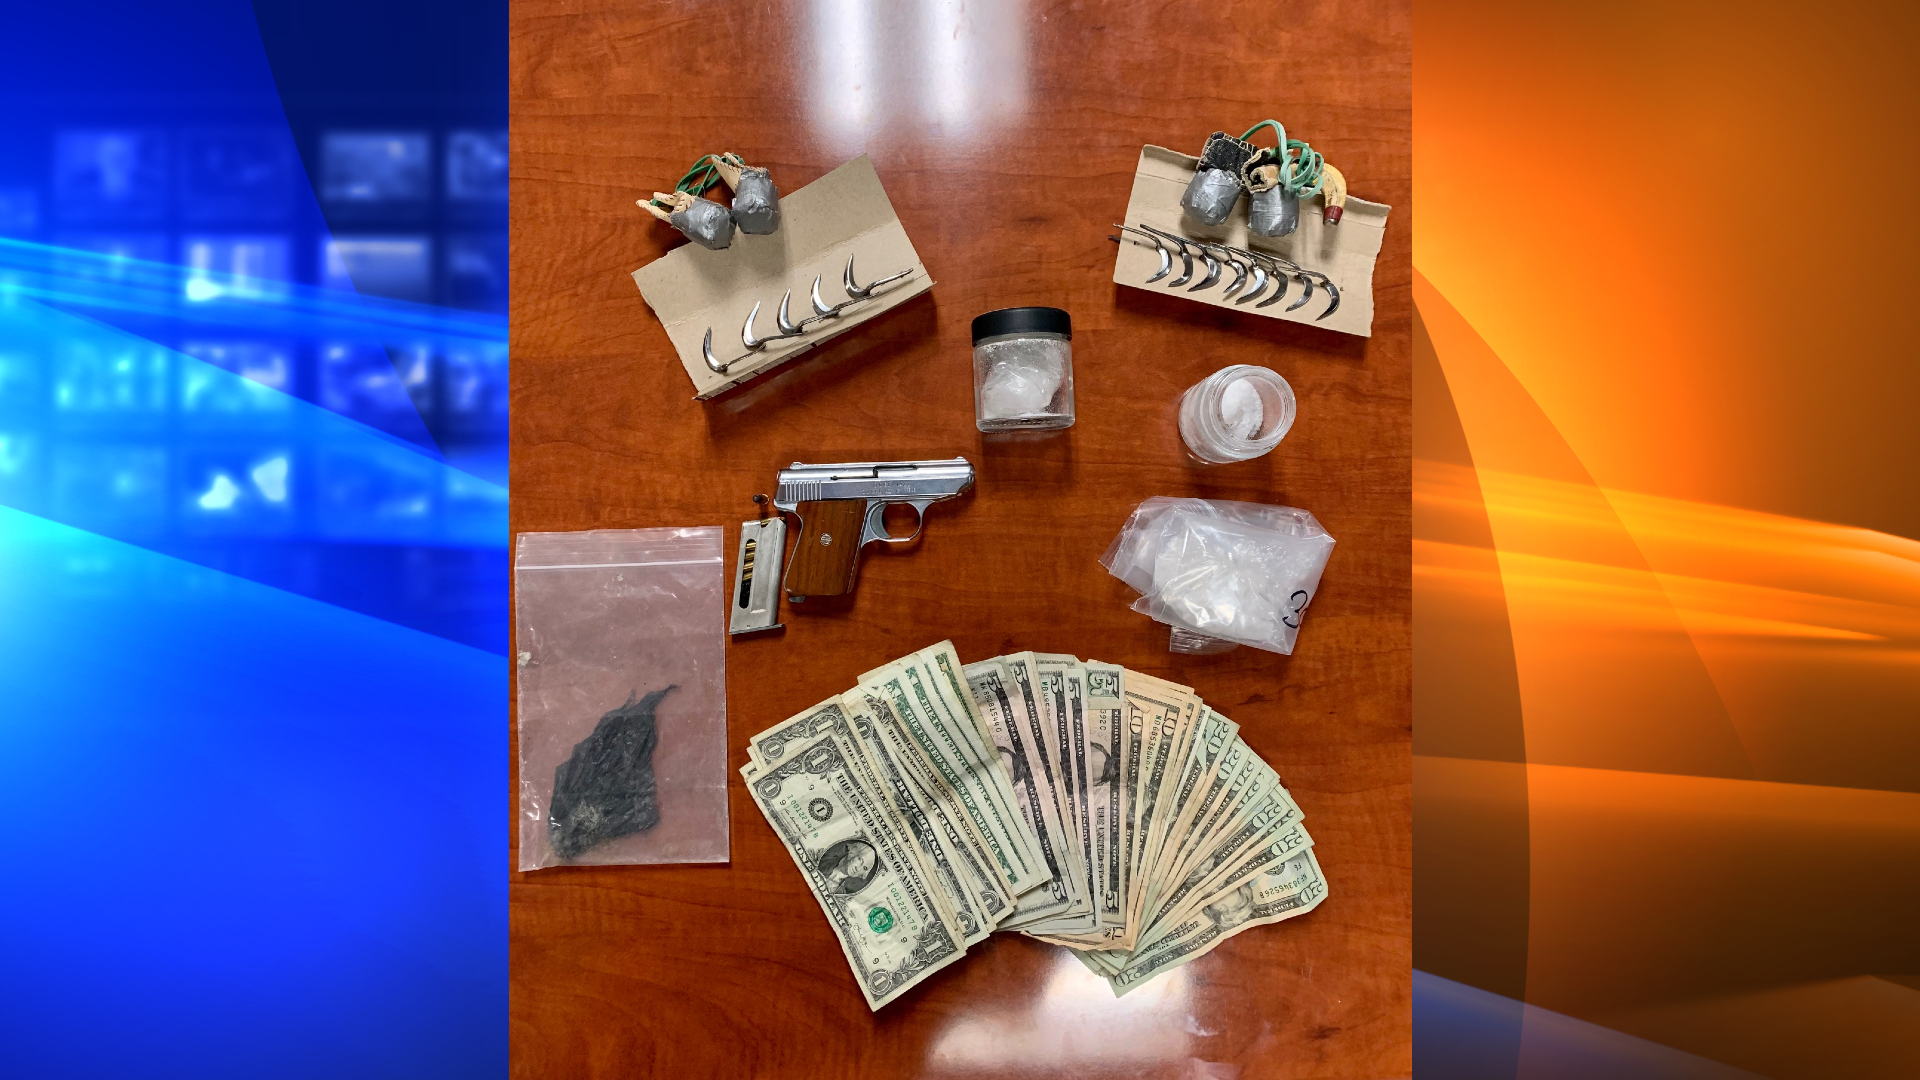 A Camarillo man was found to be in possession of methamphetamine, a gun and cockfighting equipment on Sept. 30, 2021, according to the Ventura County Sheriff's Office. (VCSO)